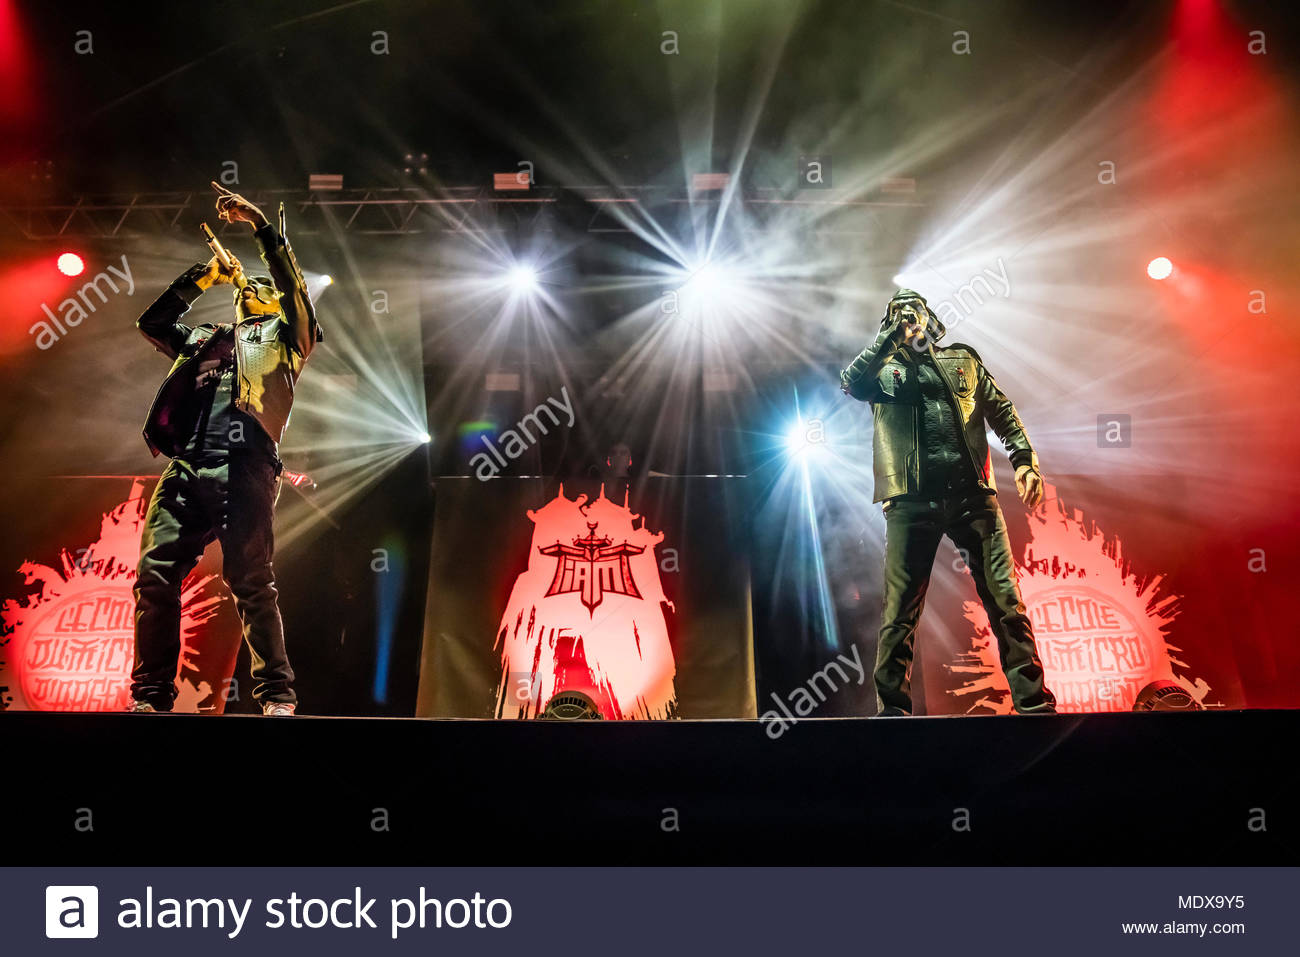 IAM performing live at the first edition of MUSILAC Mont-Blanc music festival in Chamonix (France) - 20 April 2018 - Stock Image